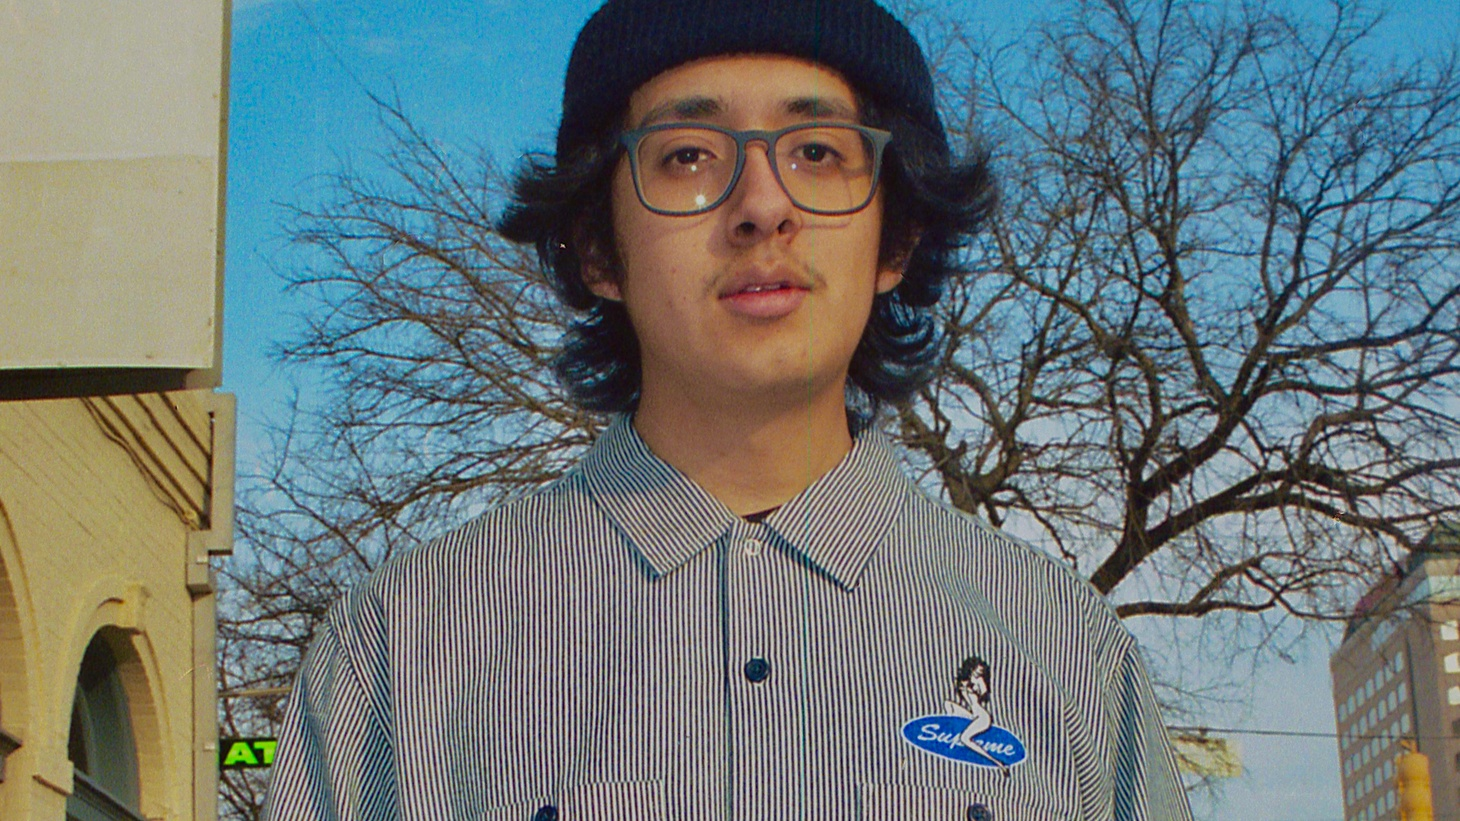 Hawthorne, CA based Cuco got major props at SXSW this year. After a stint at our home base of Santa Monica College, he began to pursue music in earnest.